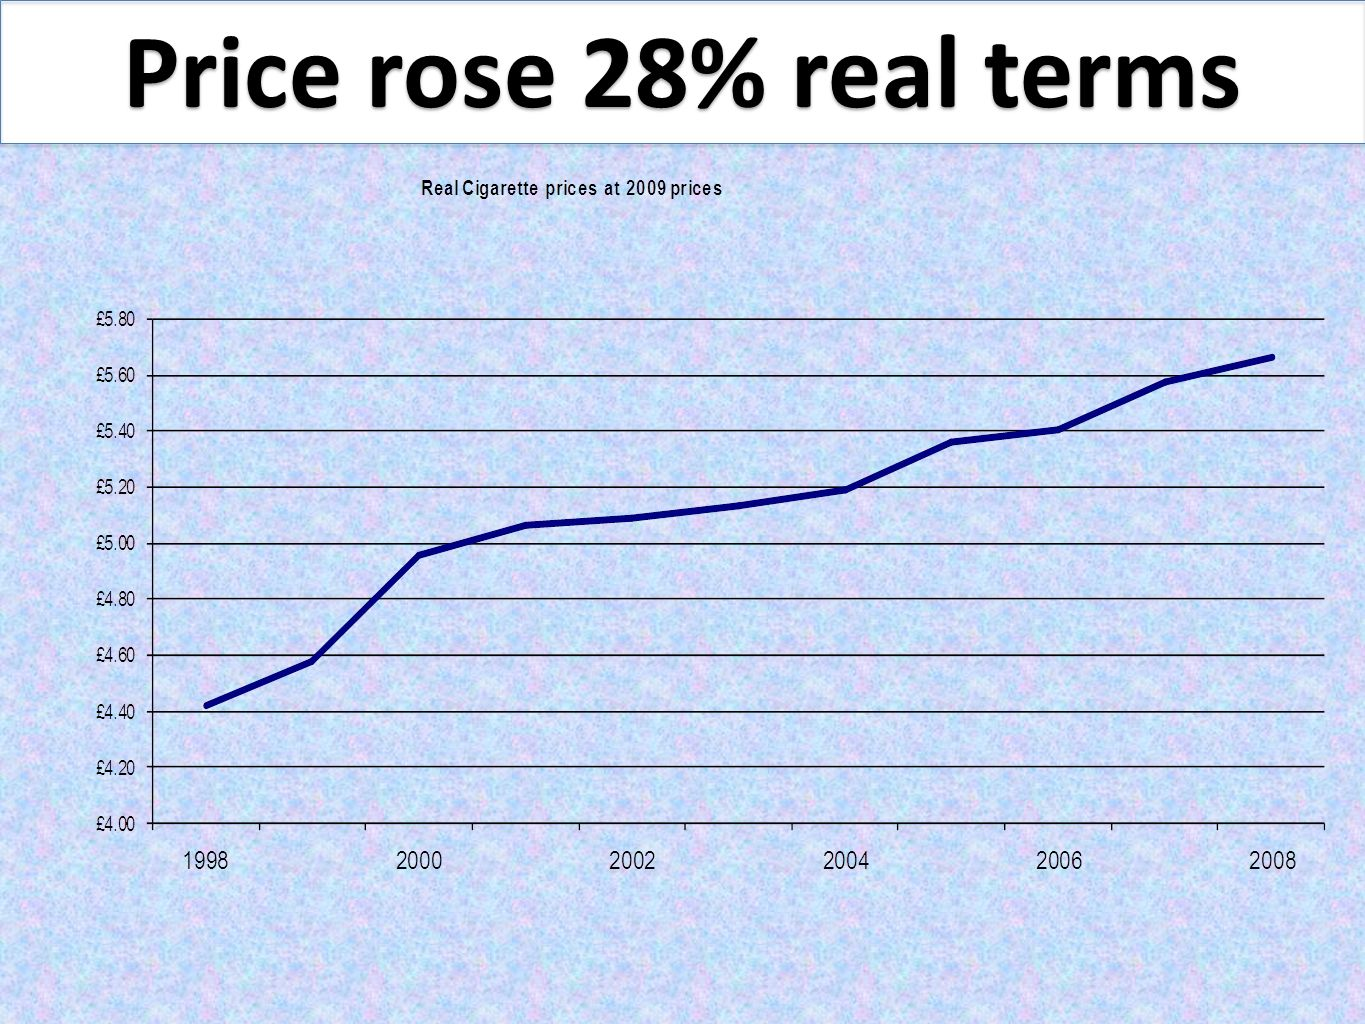 Price rose 28% real terms